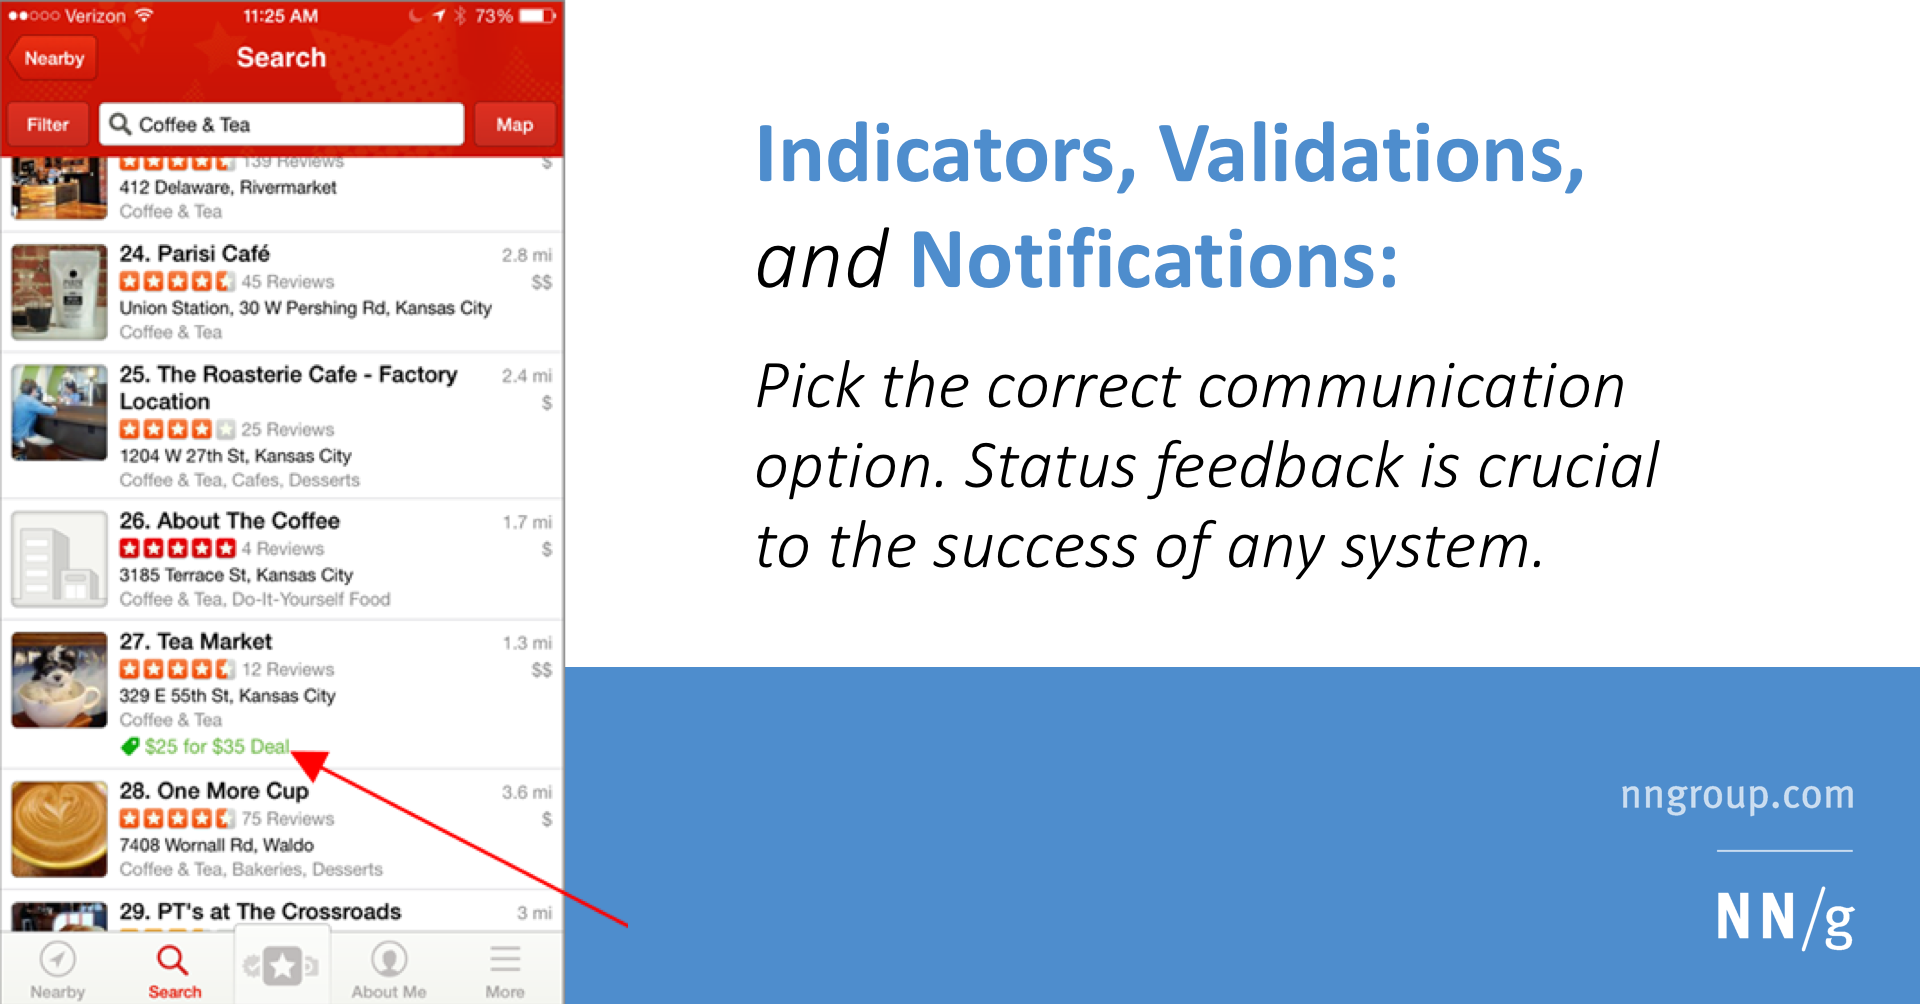 Indicators, Validations, and Notifications: Pick the Correct